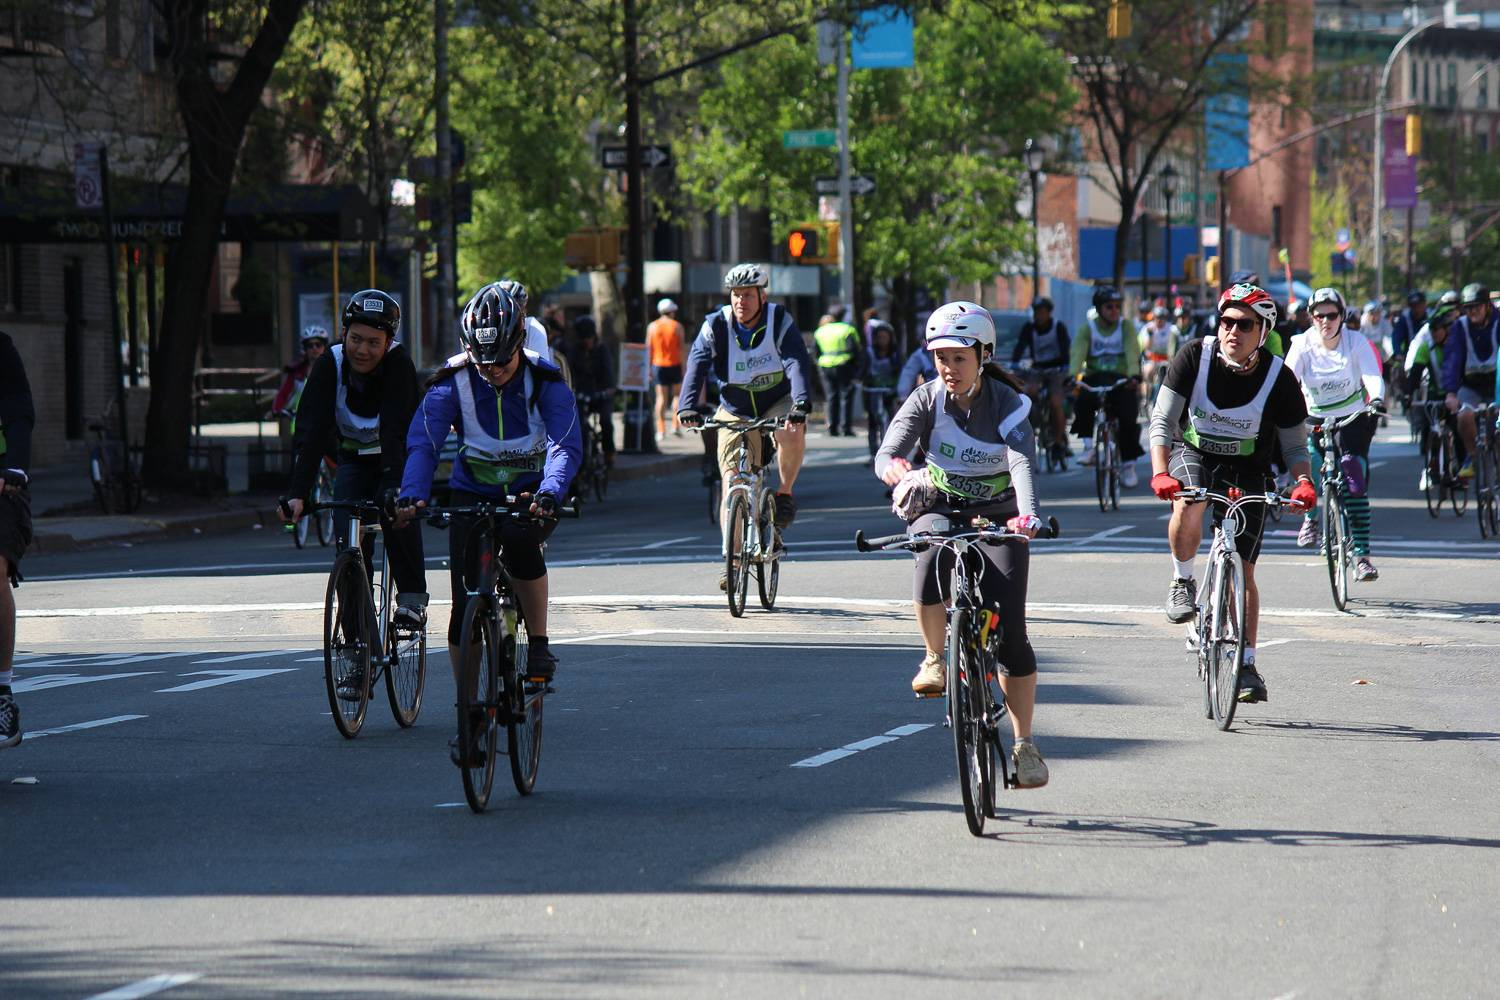 Image of cyclists in the 5 Boro Bike Tour in New York City.